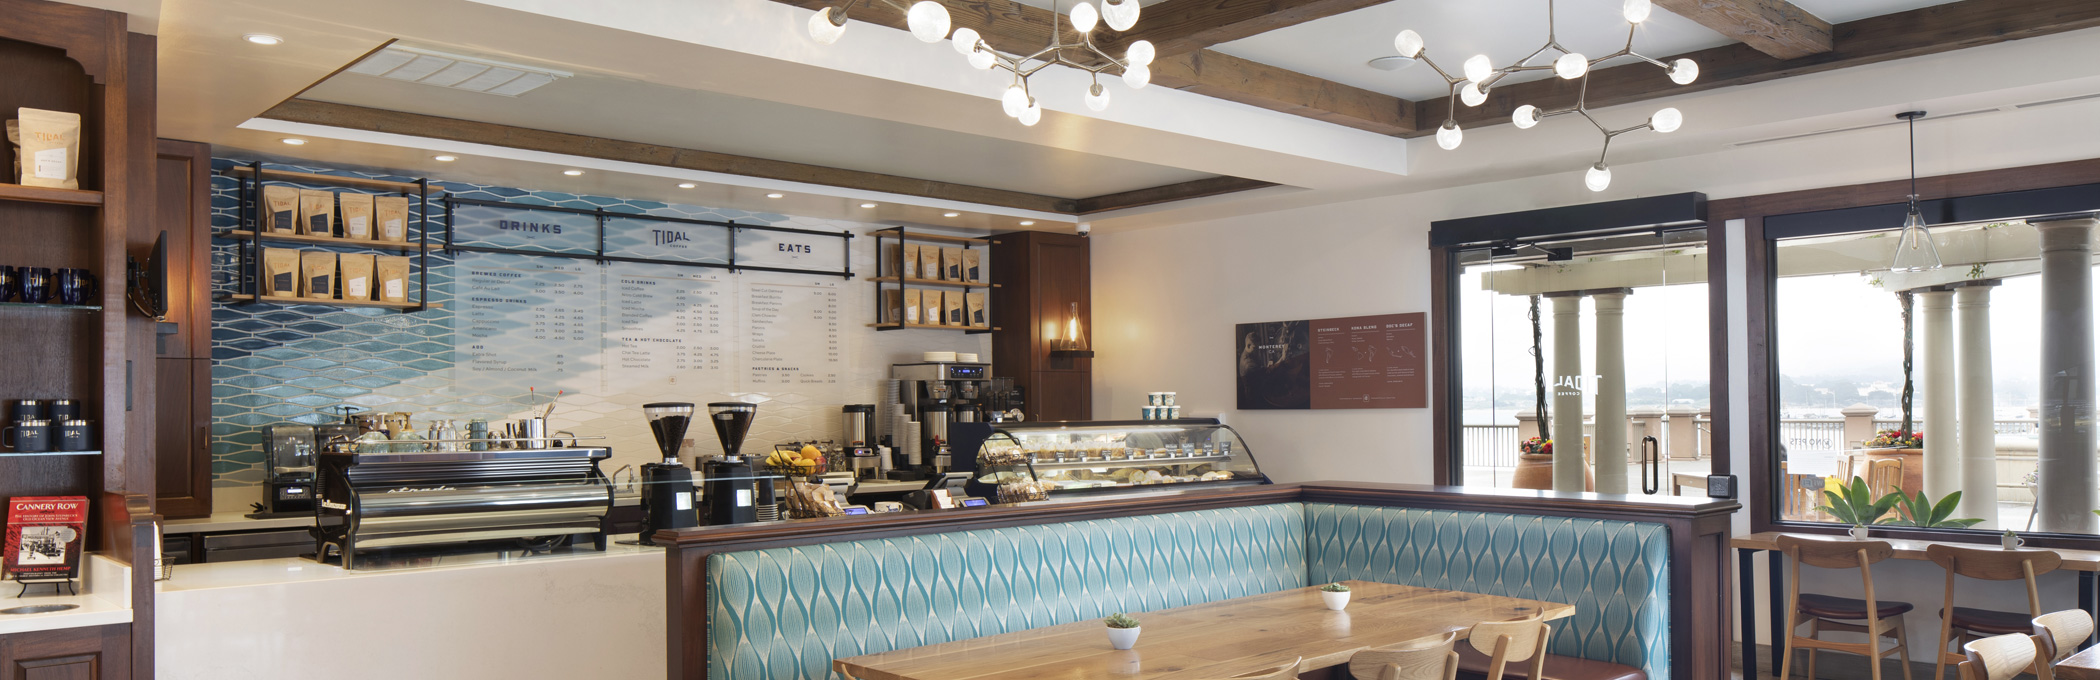 tidal coffee dining room header